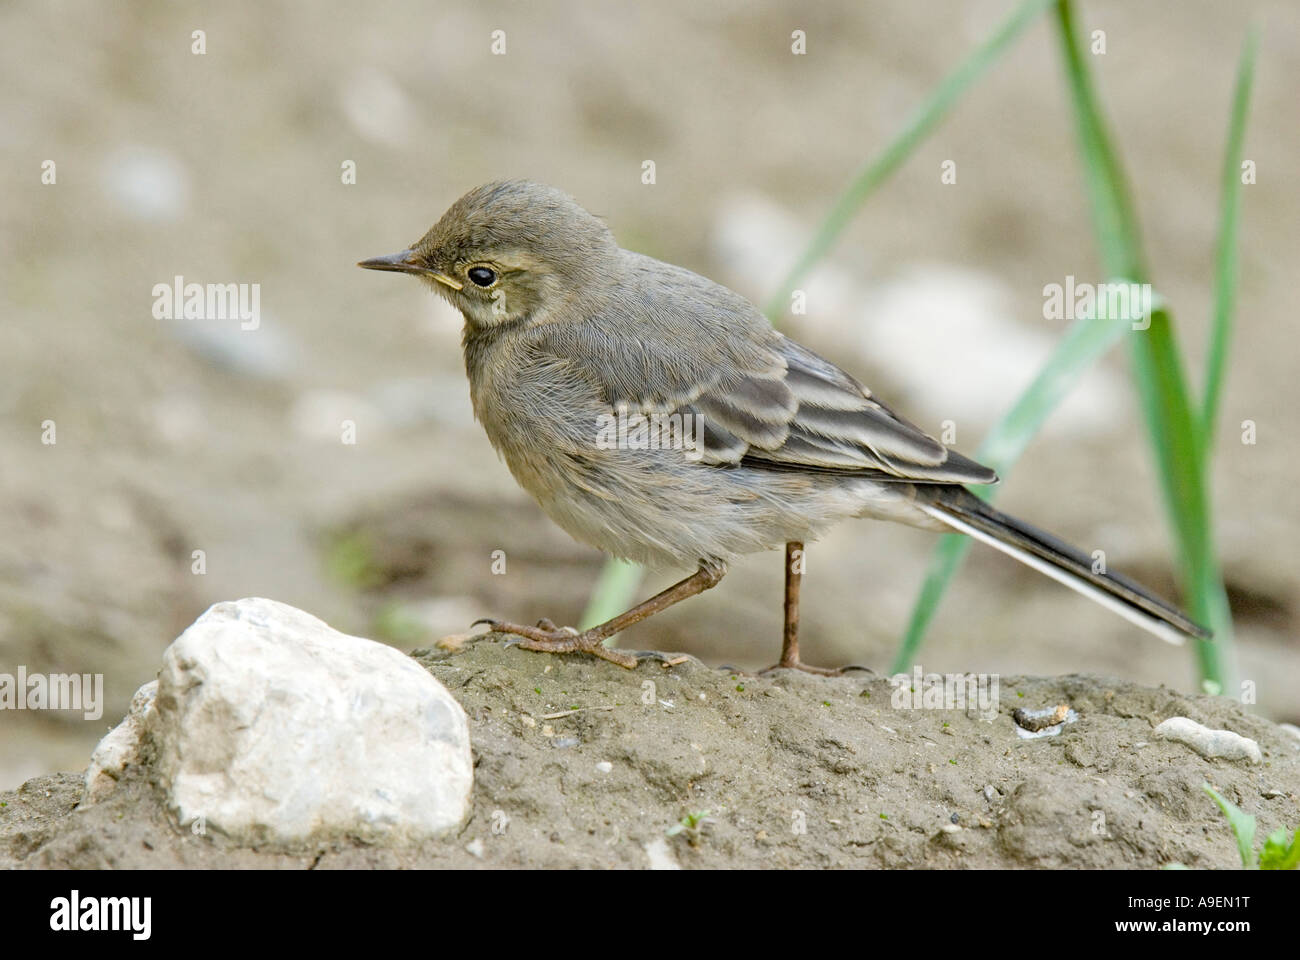 Pied Wagtail, Pied White Wagtail (Motacilla alba), young walking on sand - Stock Image